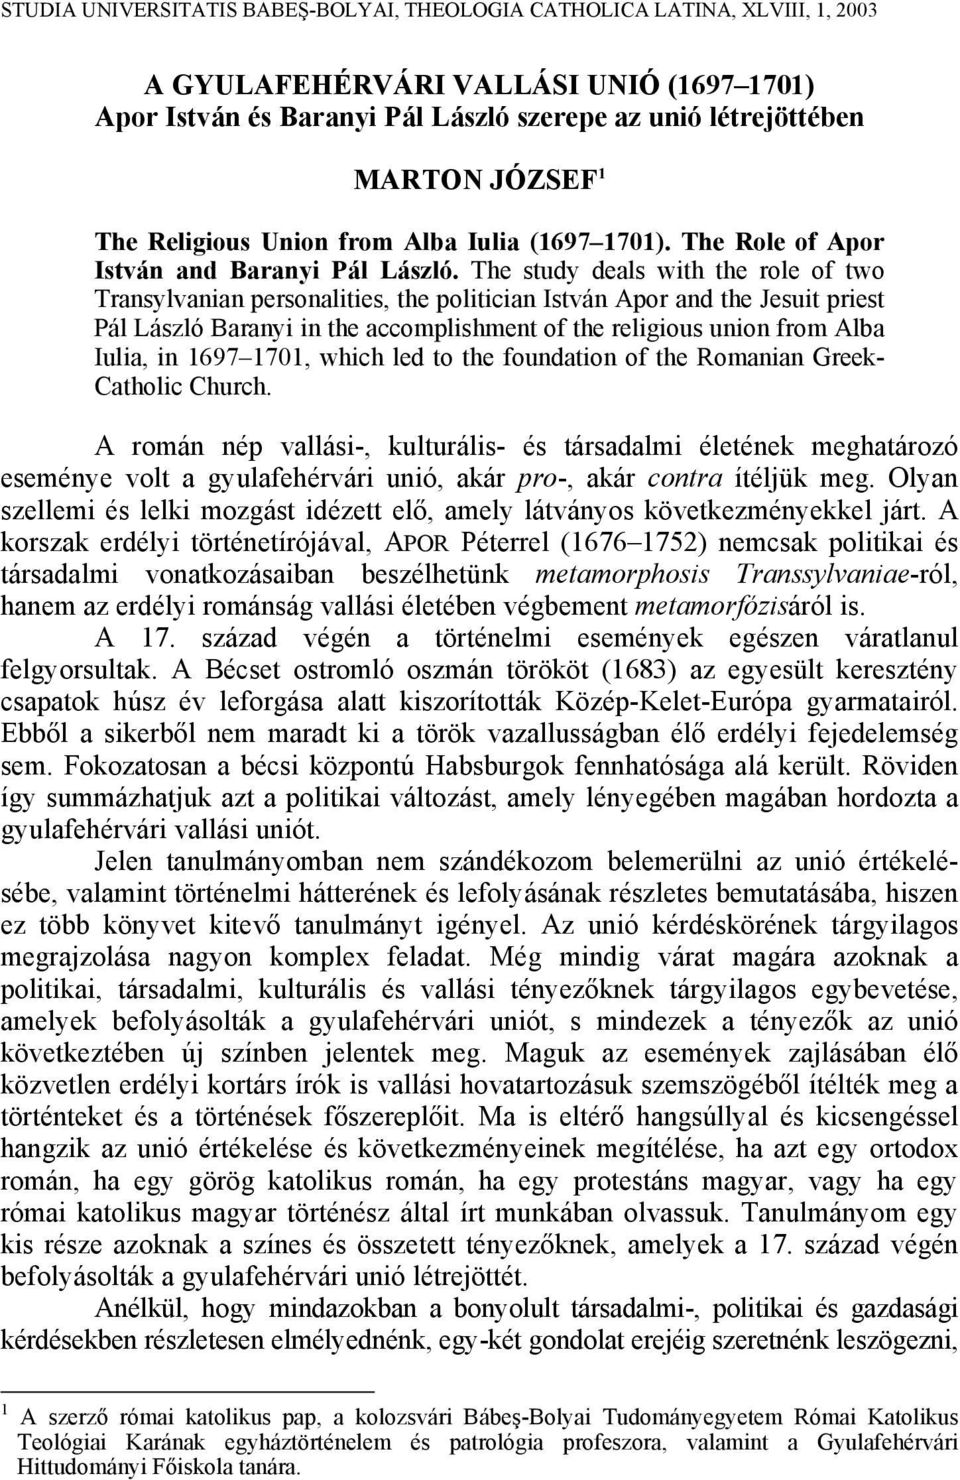 The study deals with the role of two Transylvanian personalities, the politician István Apor and the Jesuit priest Pál László Baranyi in the accomplishment of the religious union from Alba Iulia, in